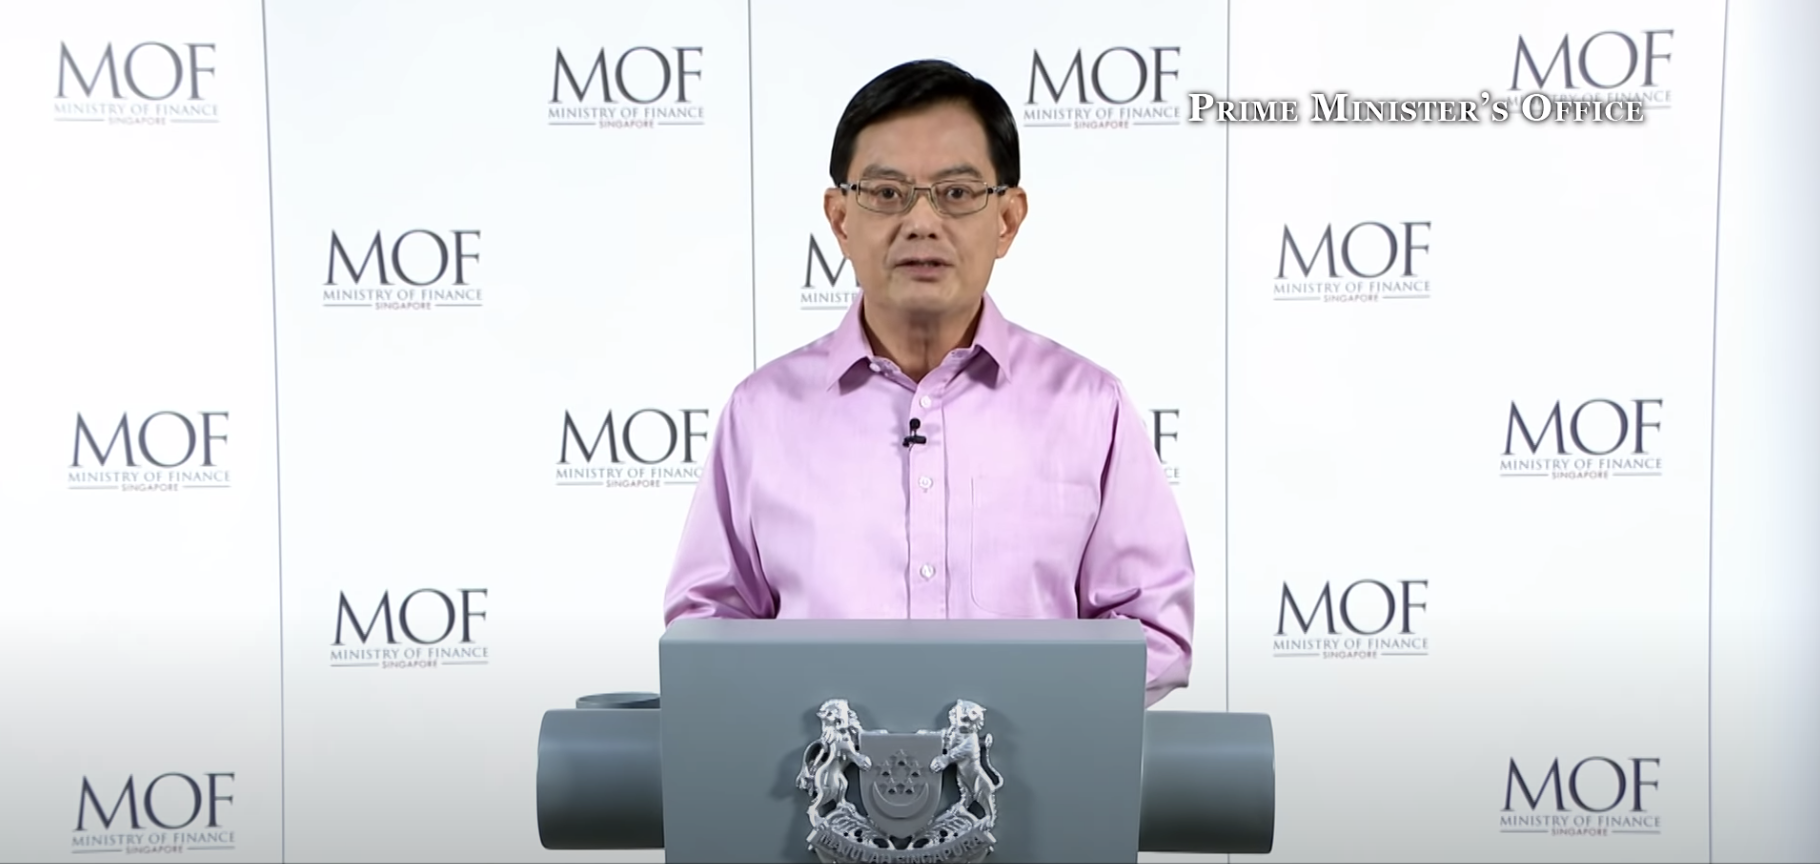 Minister for Finance Heng Swee Keat. Photo courtesy: MOF